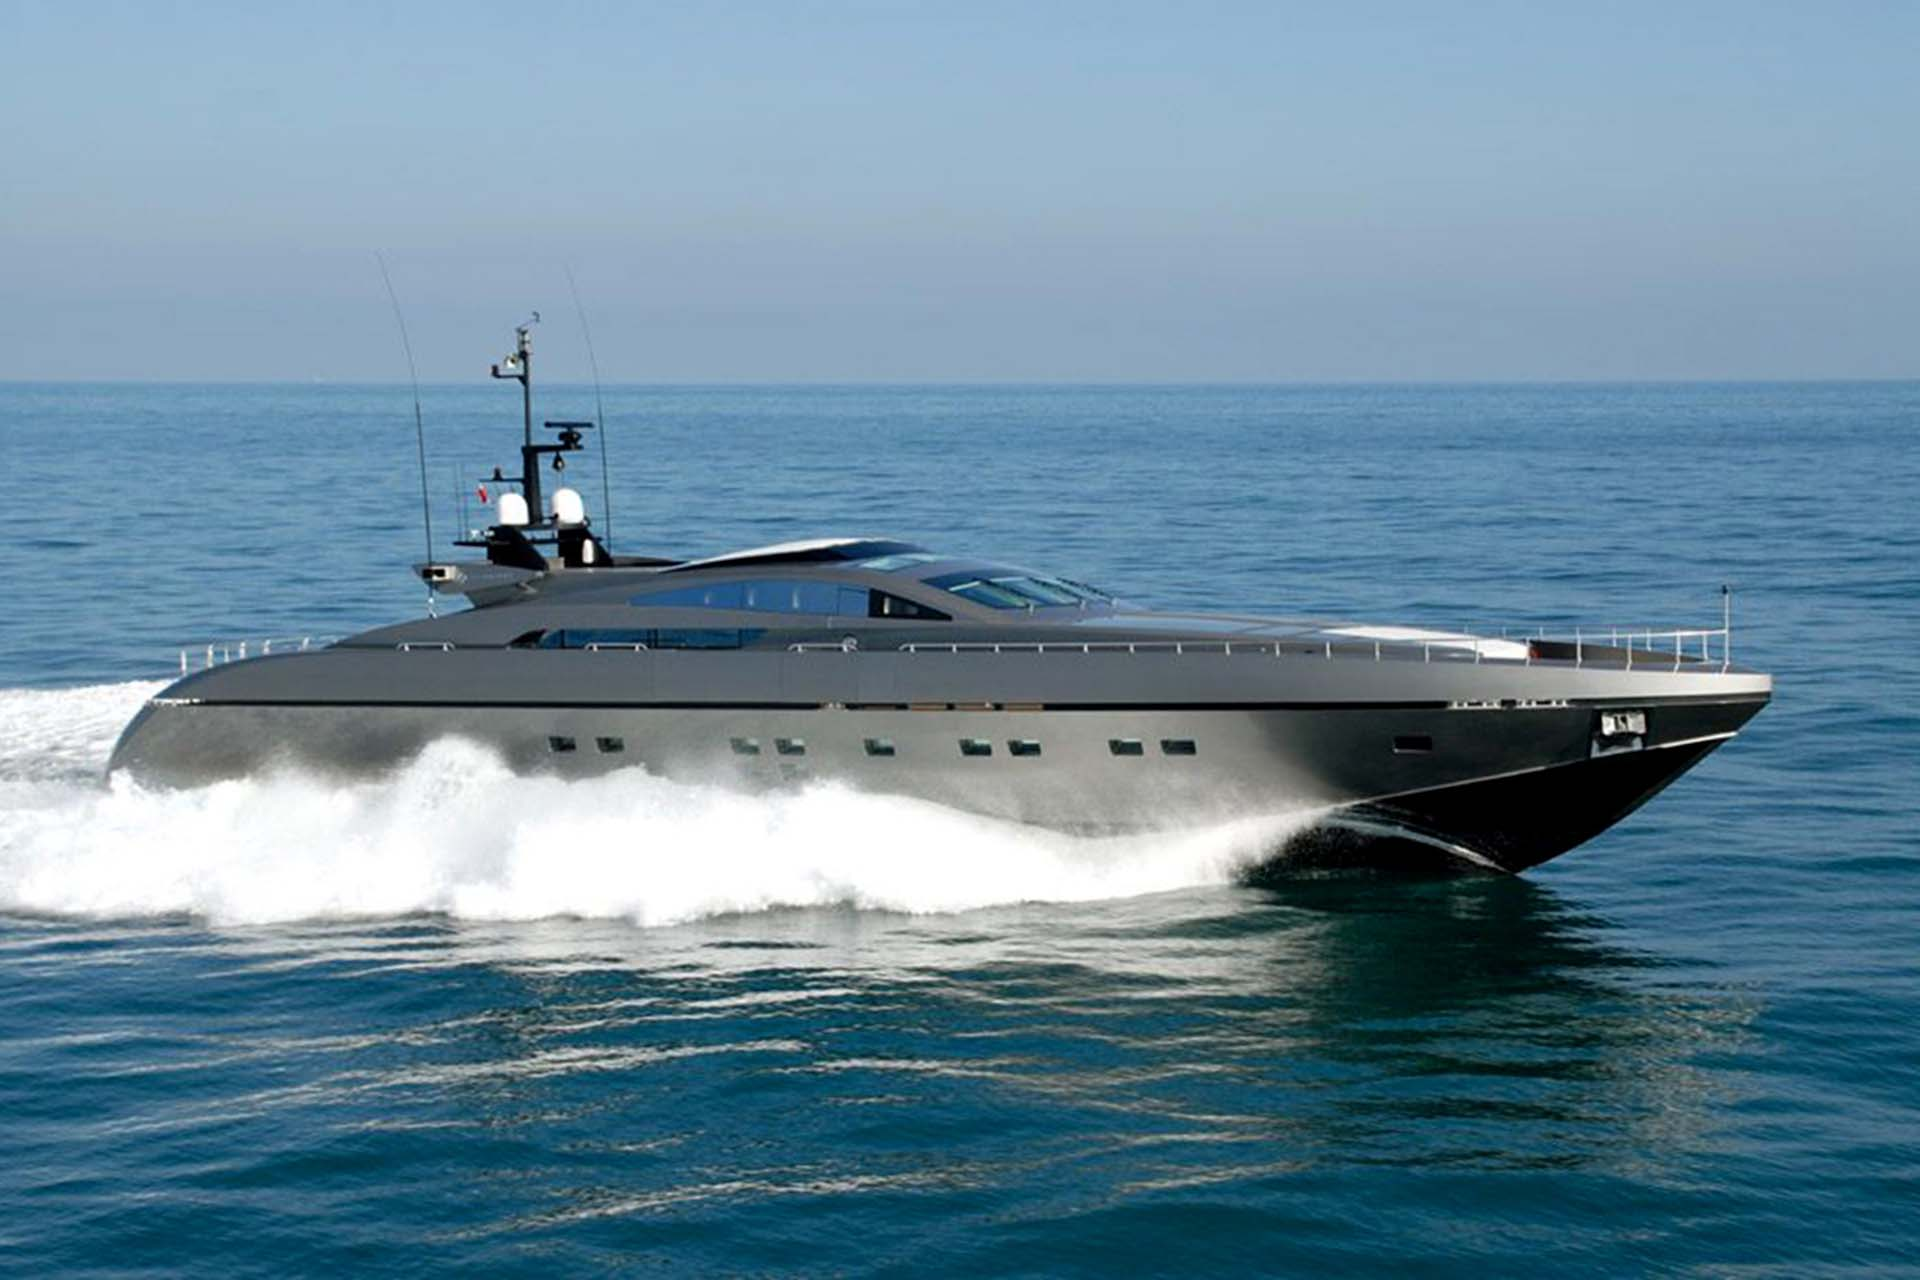 baglietto - PURE INSANITY - Paskowsky Yacht Design